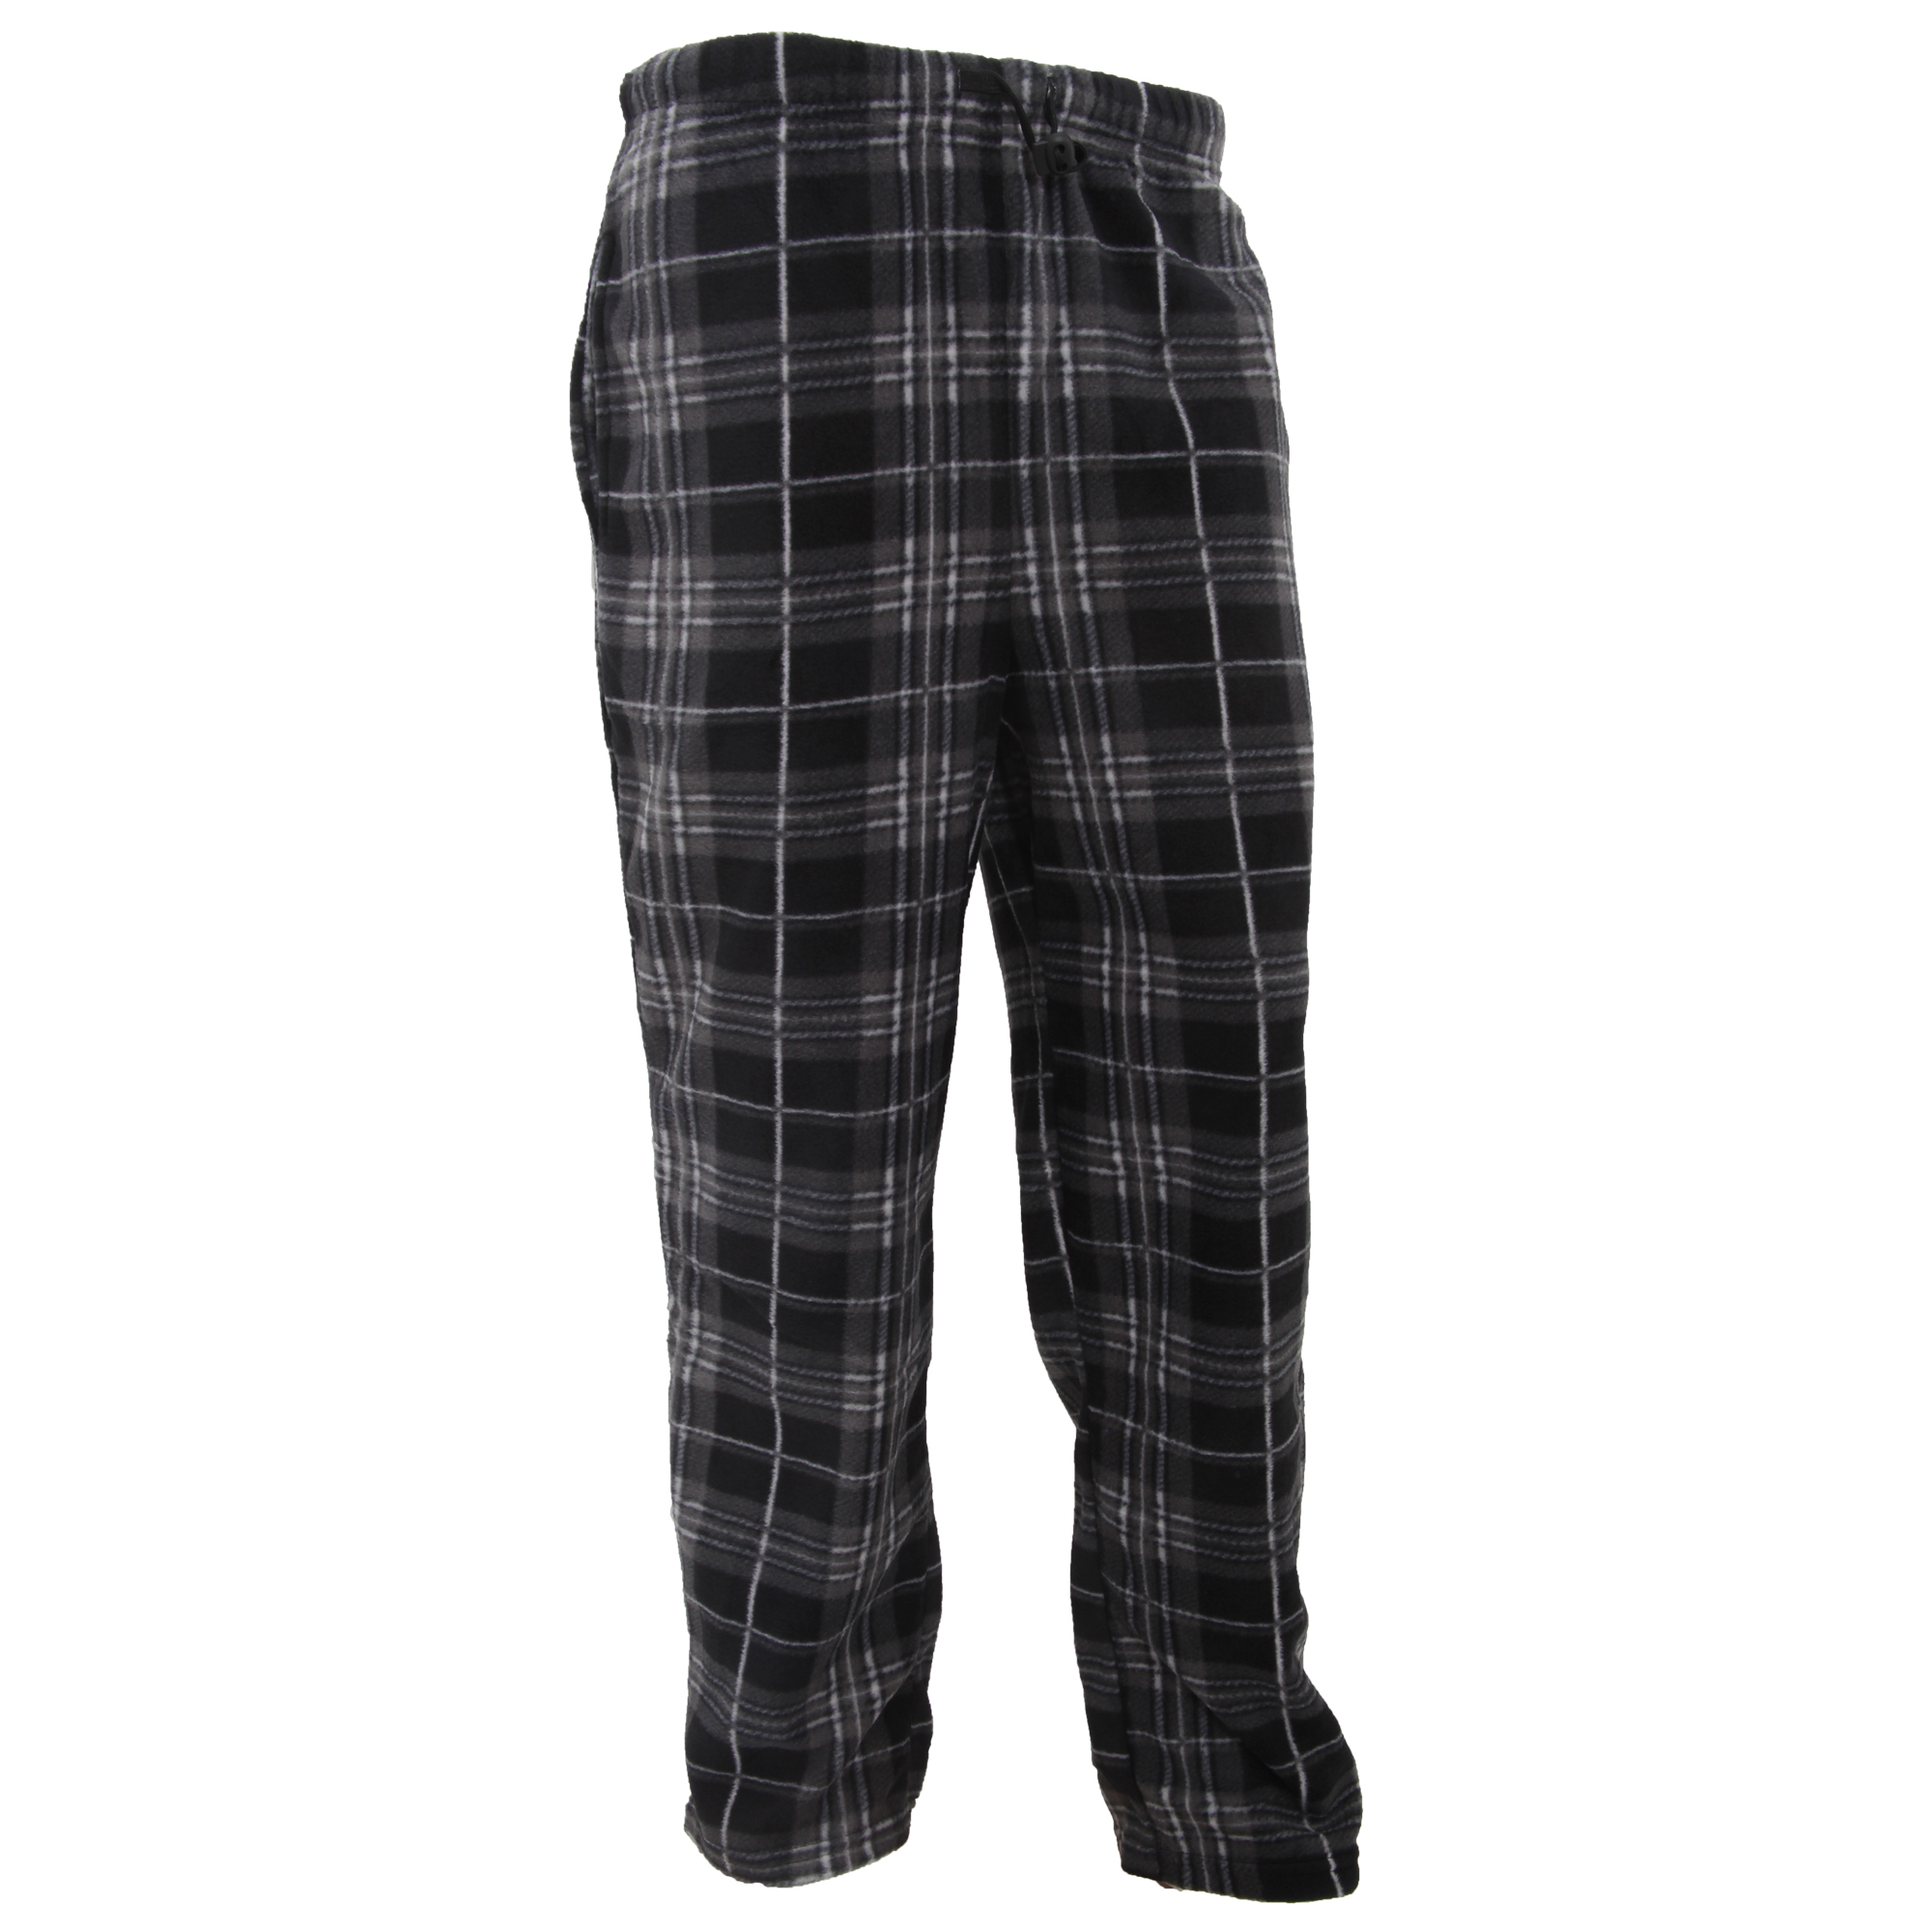 pantalon de pyjama homme ebay. Black Bedroom Furniture Sets. Home Design Ideas